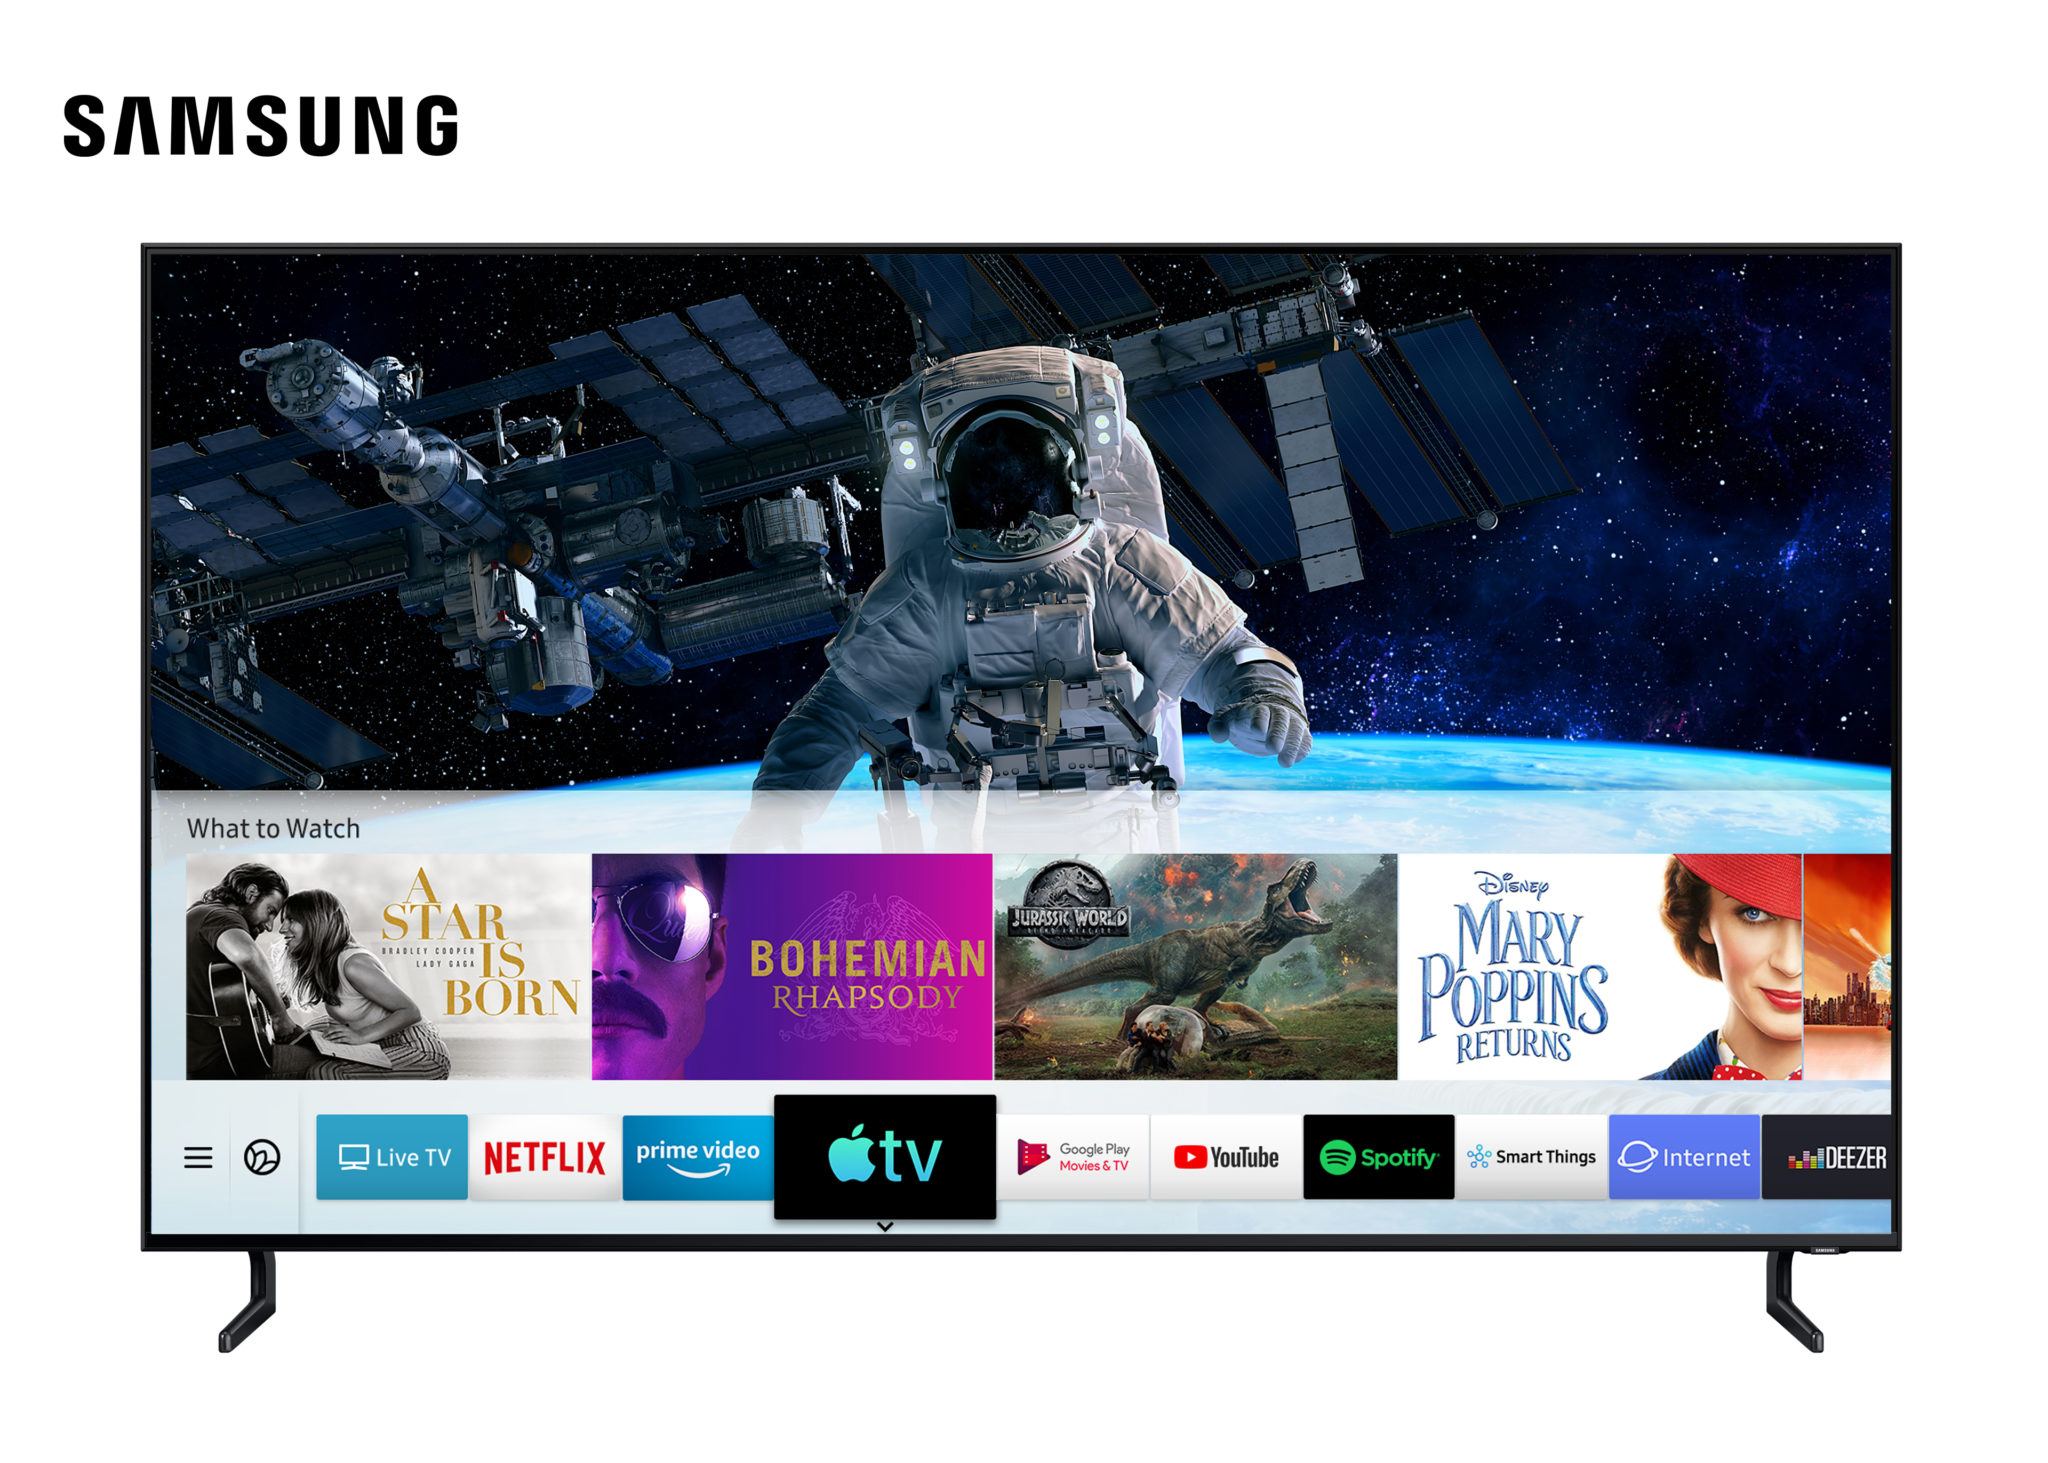 The New Apple TV App & AirPlay 2 Are Coming to Samsung Smart